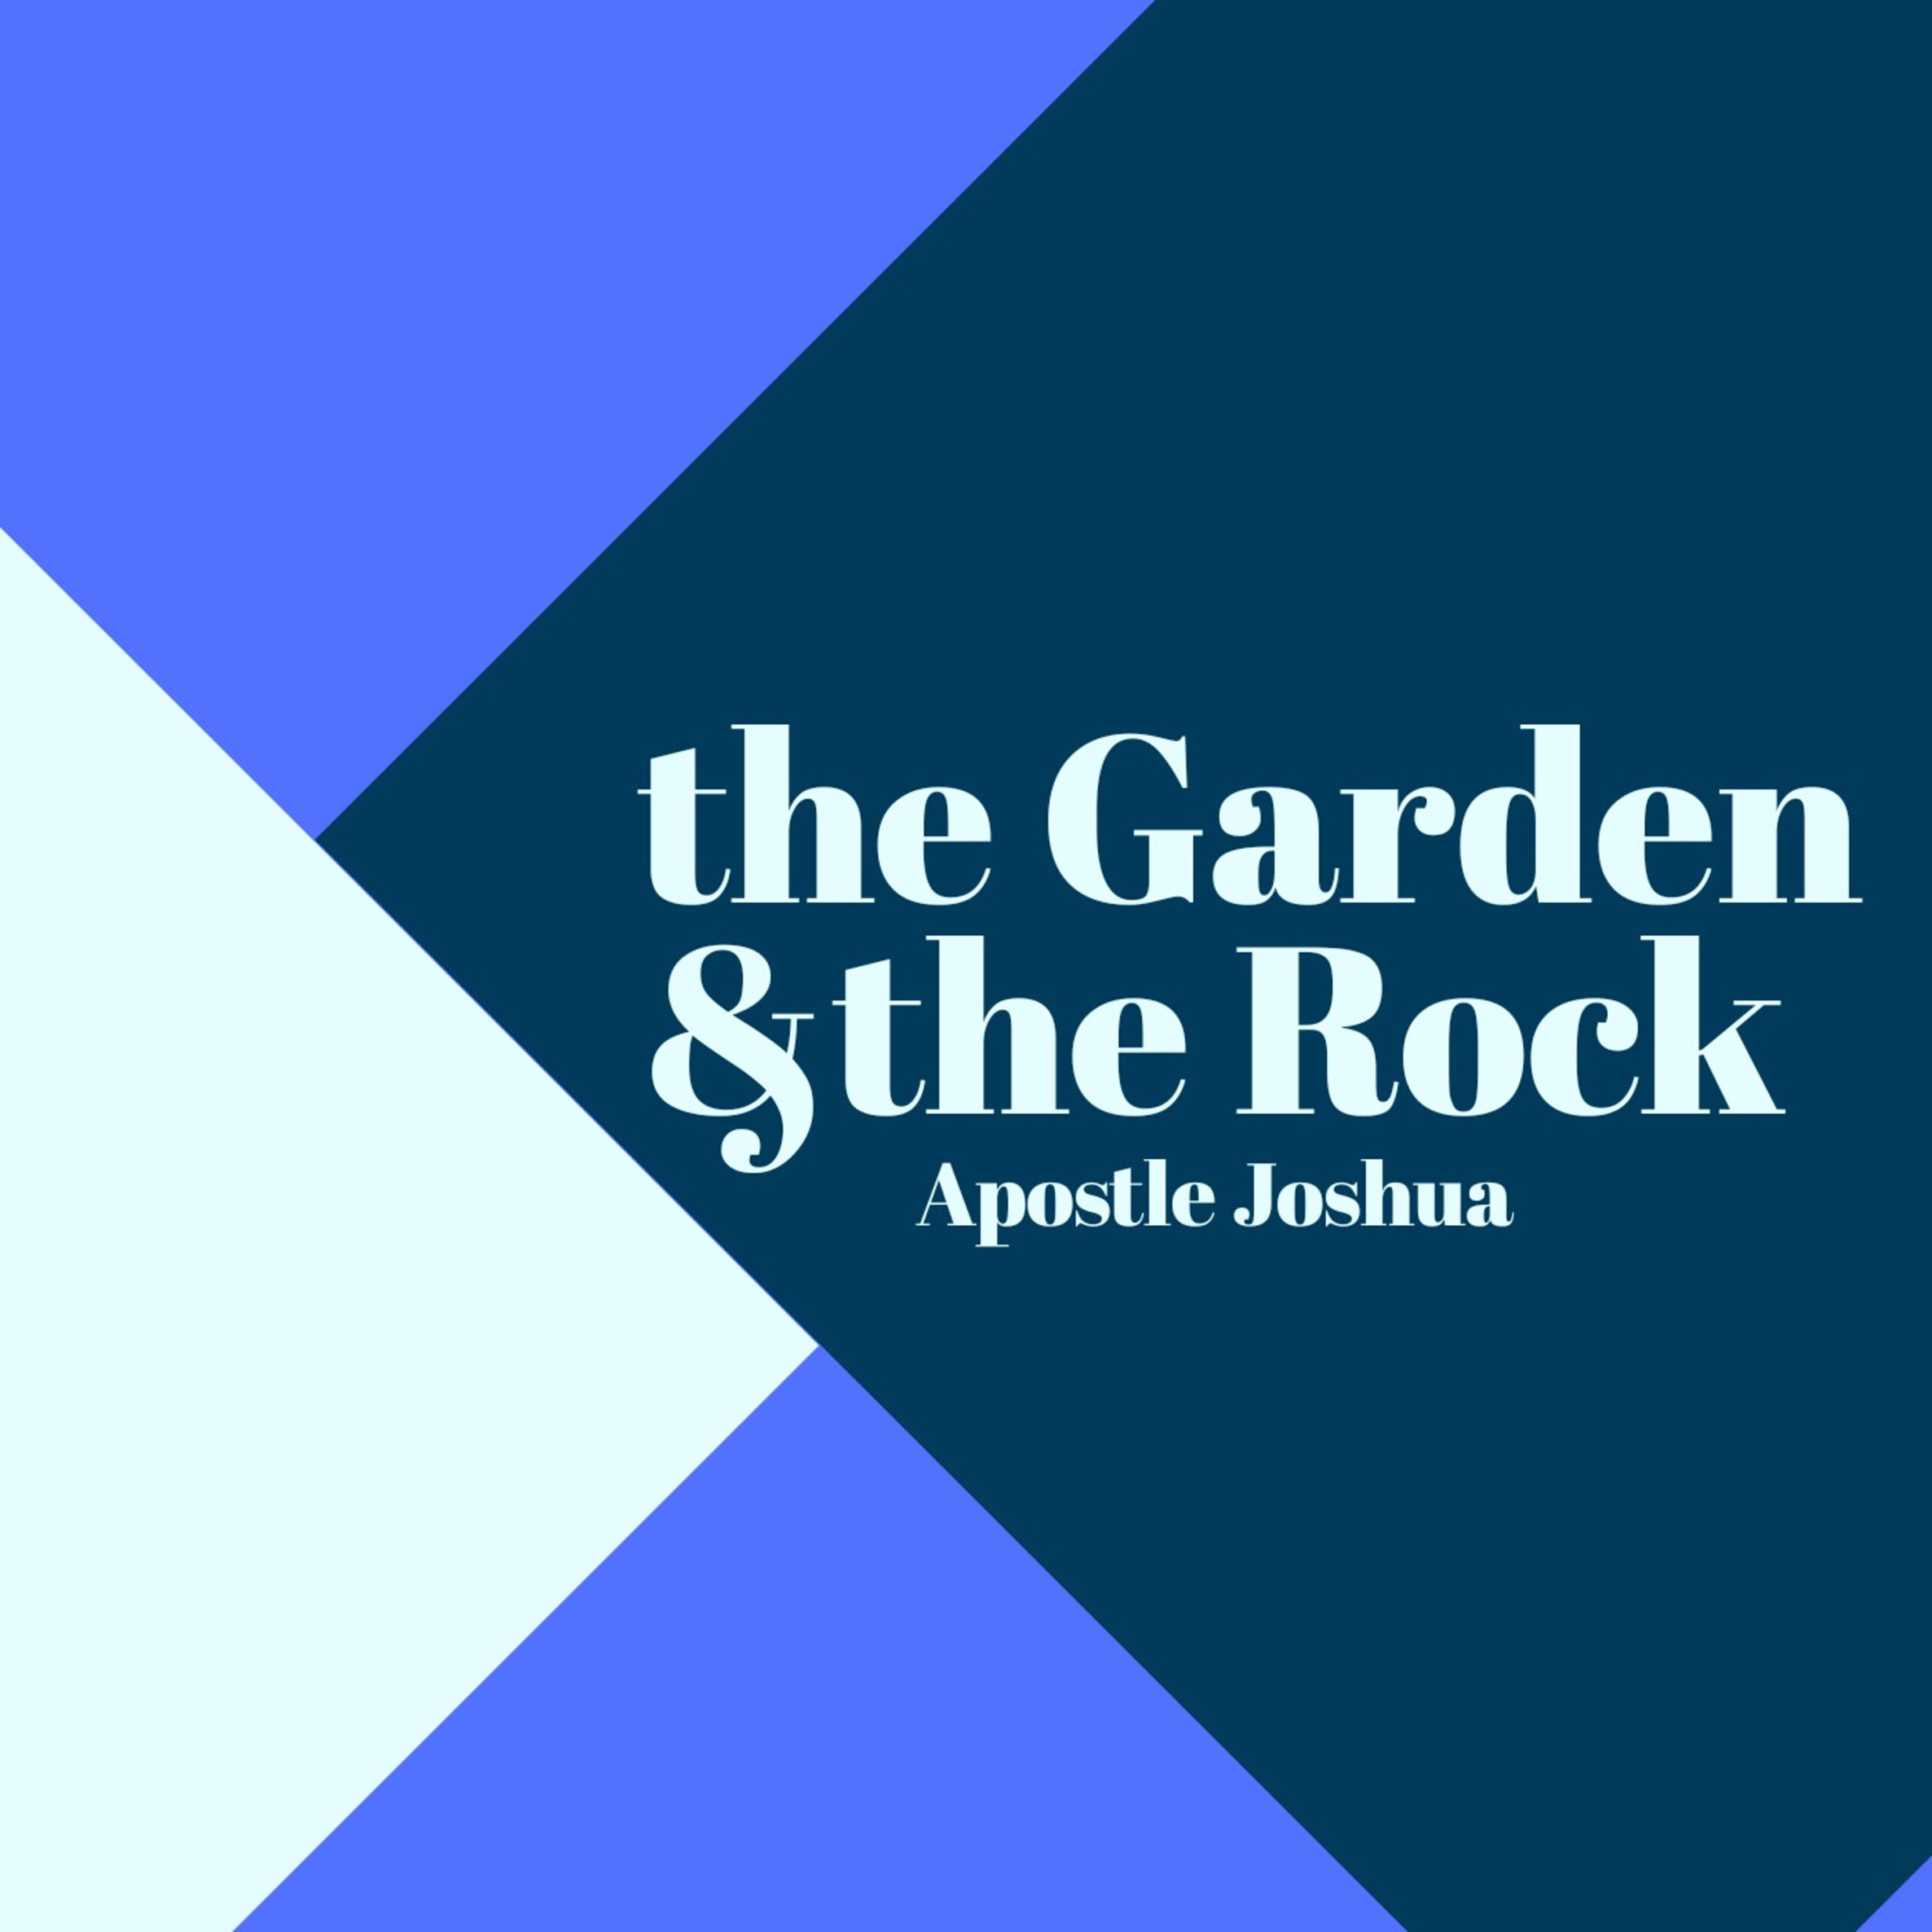 The Garden and the Rock